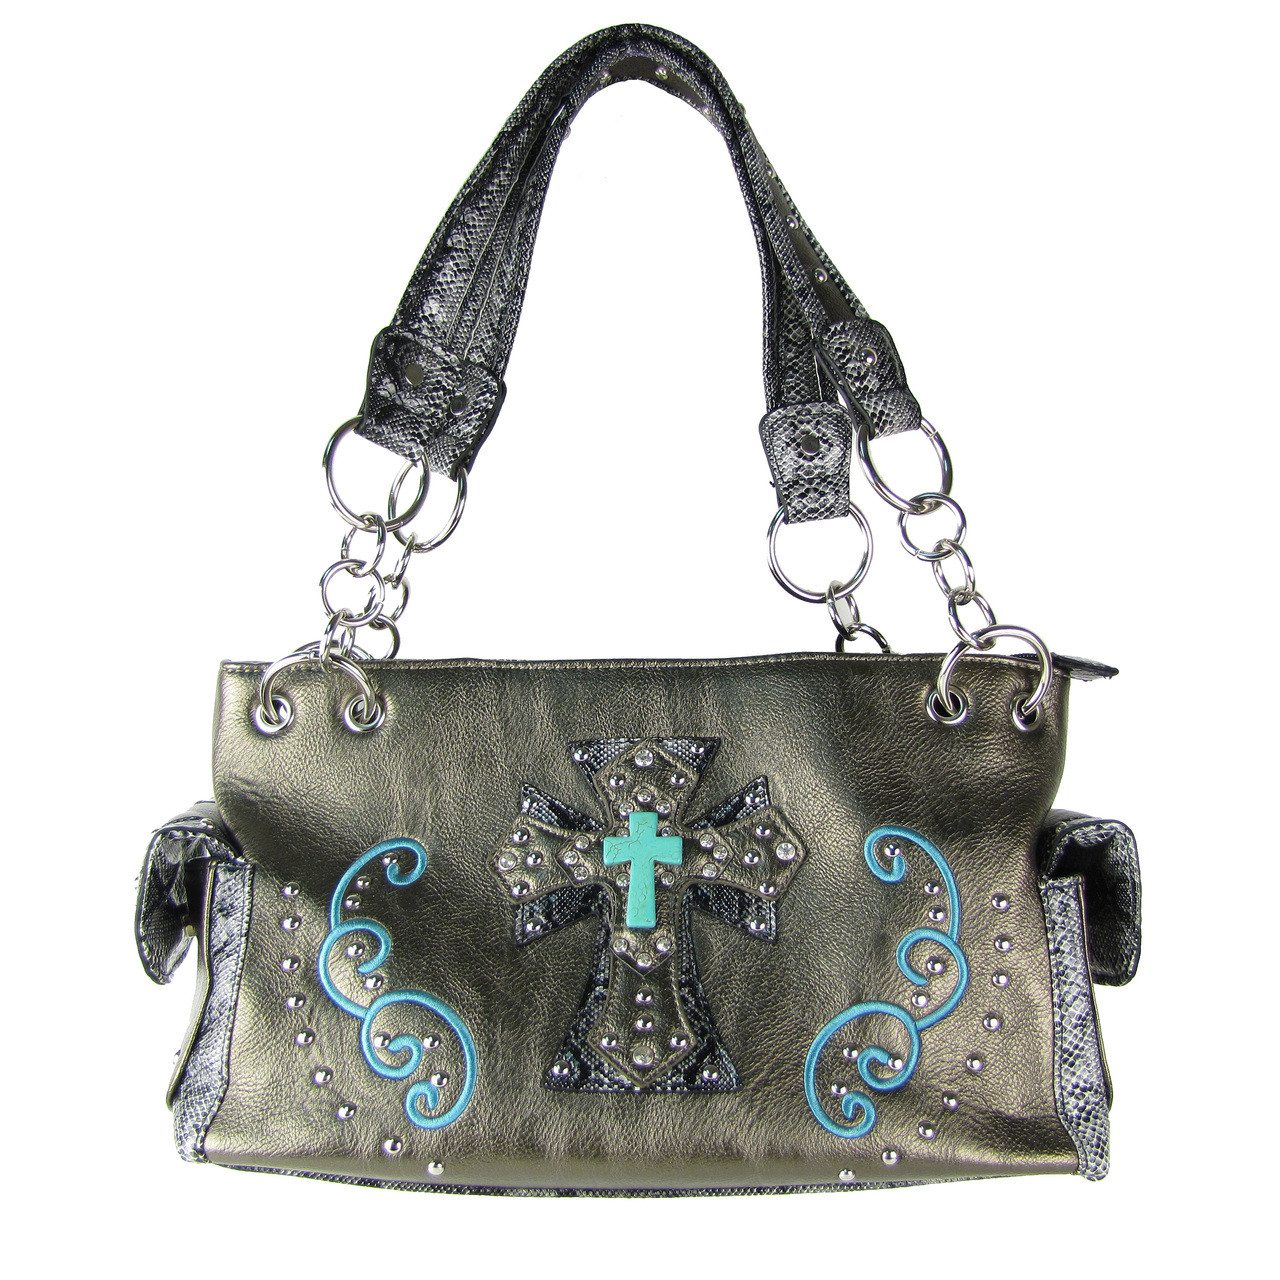 PEWTER REPTILE STUDDED RHINESTONE BLUE STONE CROSS LOOK SHOULDER HANDBAG HB1-W3CCRPWT